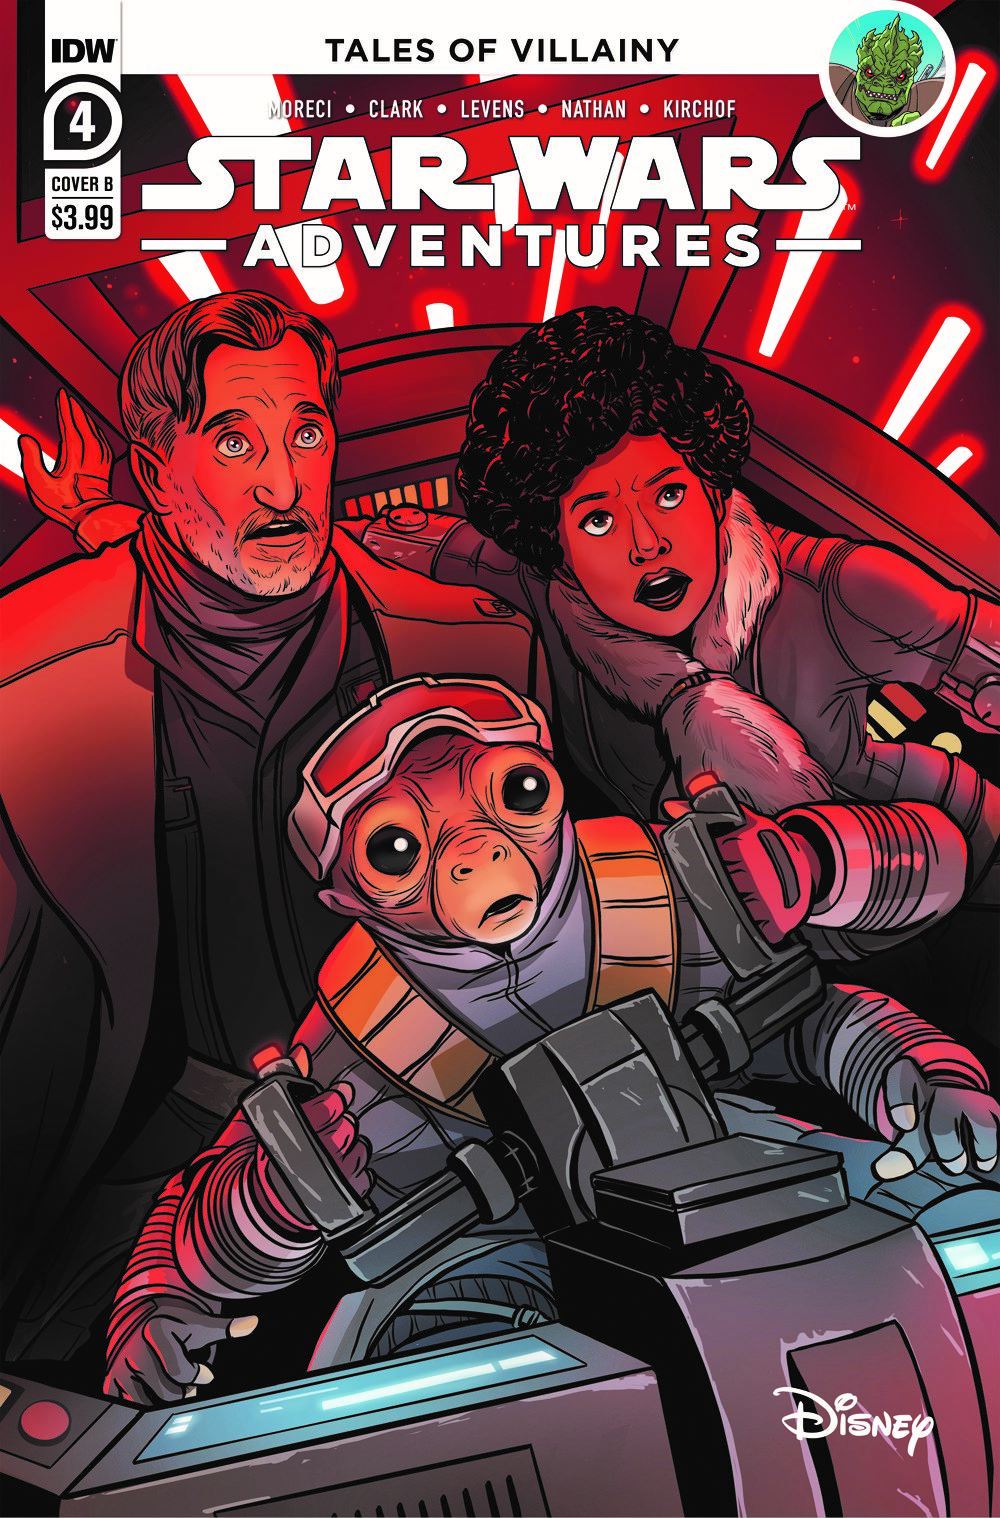 SWA-04-Cover-B ComicList: IDW Publishing New Releases for 03/24/2021